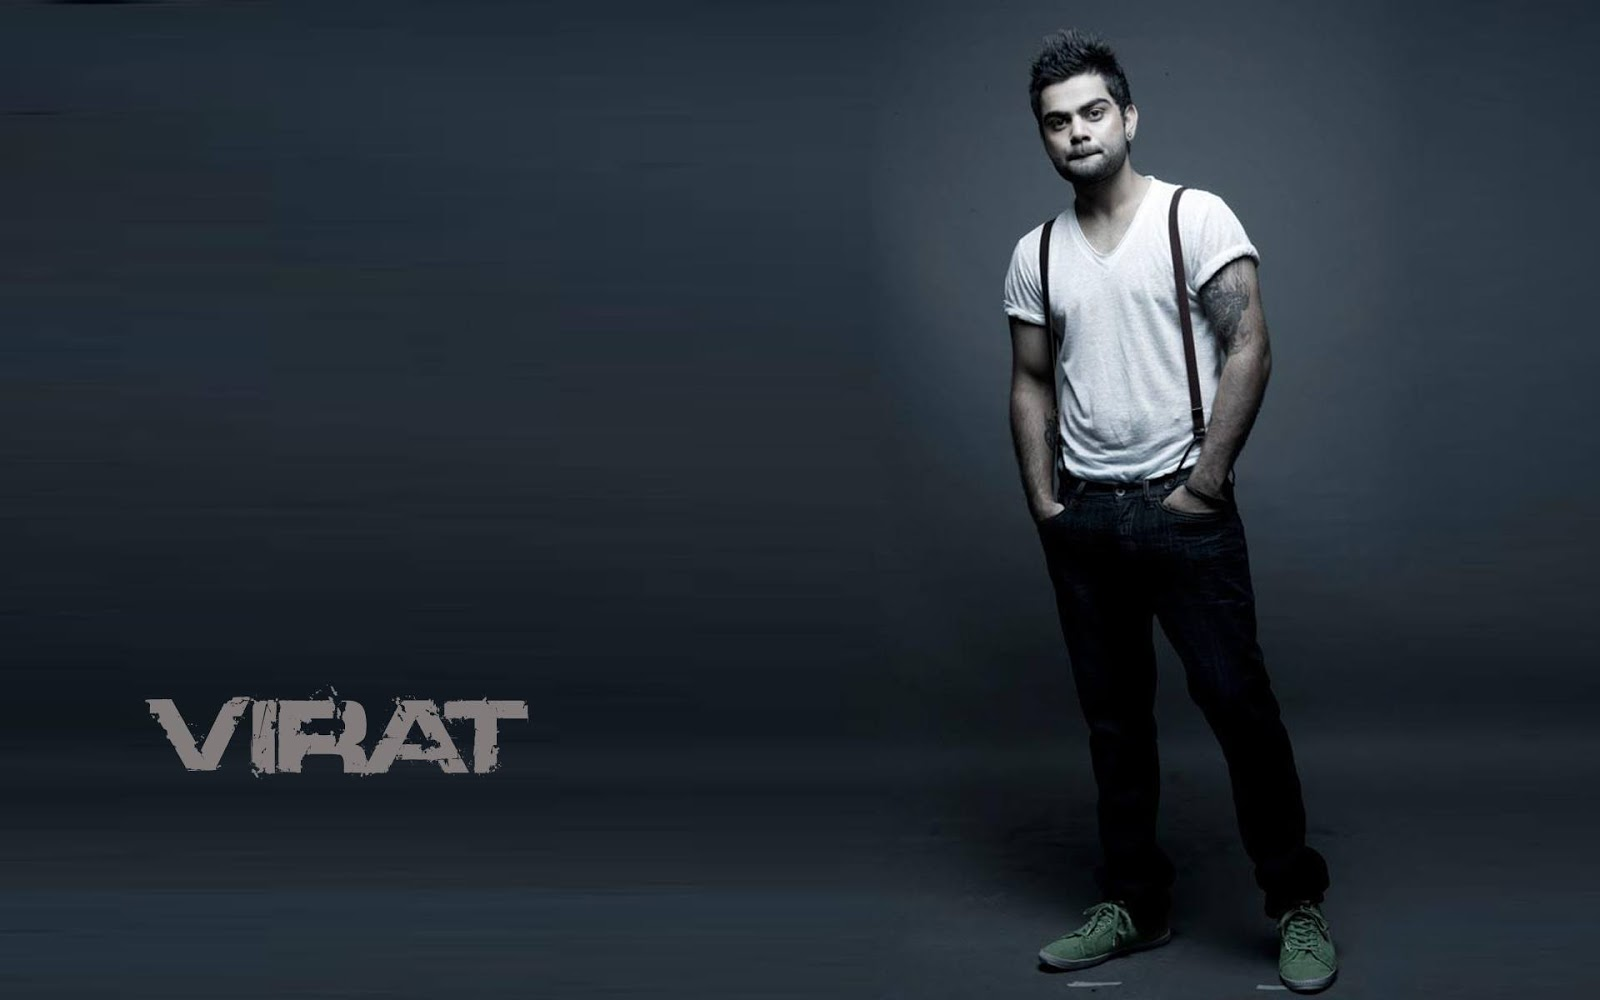 Latest virat kohli wallpapers images photo download in hd for New fashion wallpaper